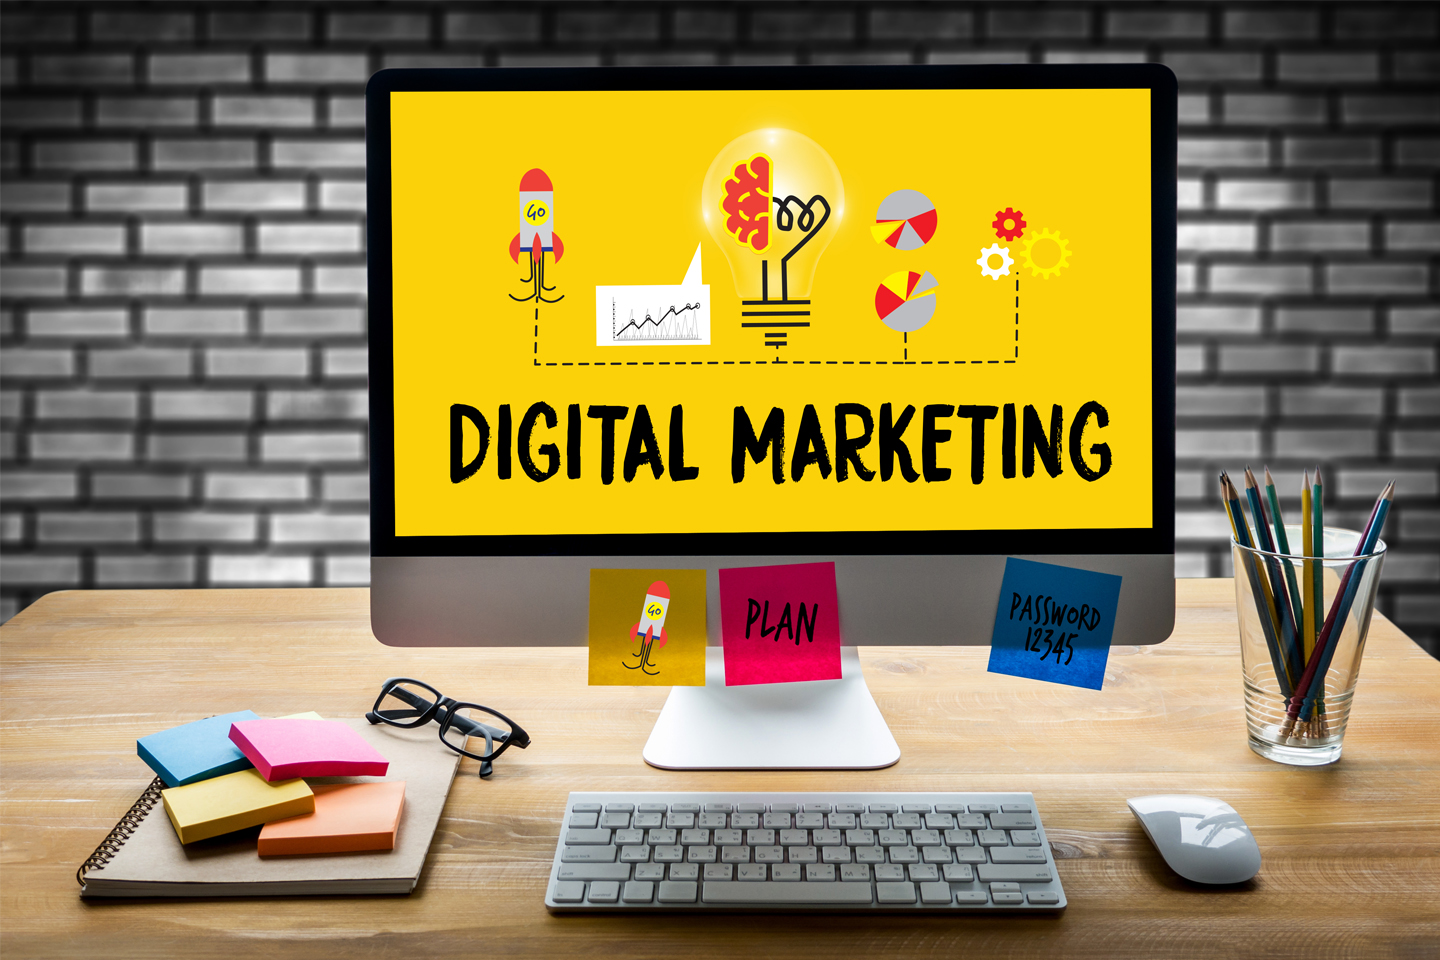 Digital marketing role in business development